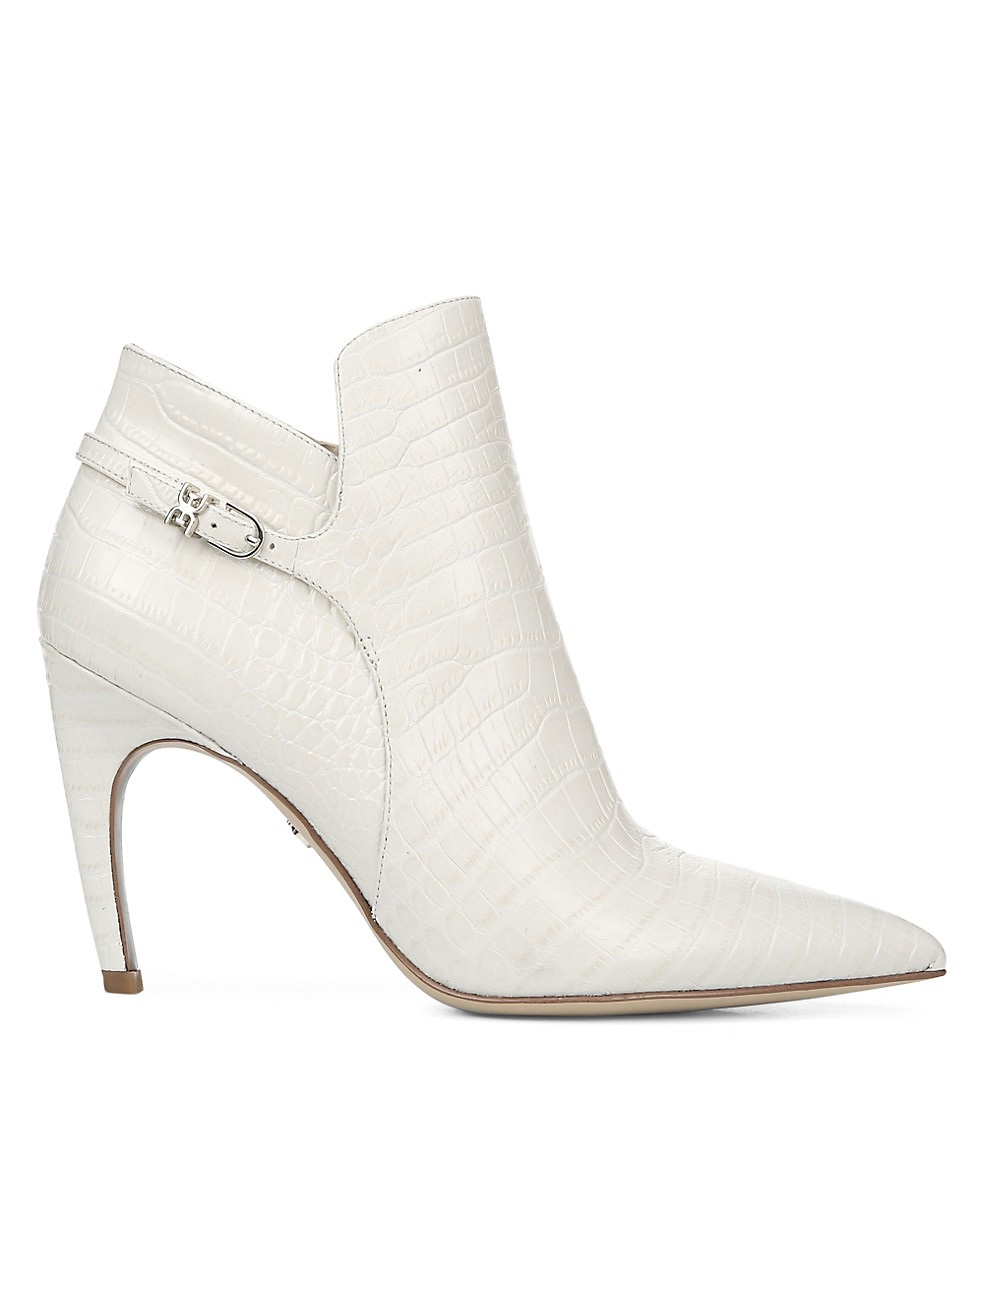 Shoe Trends Everyone Will Wear for Fall, neutral boots, white boots, Sam Edelman fiora snakeskin embossed ivory leather ankle boots